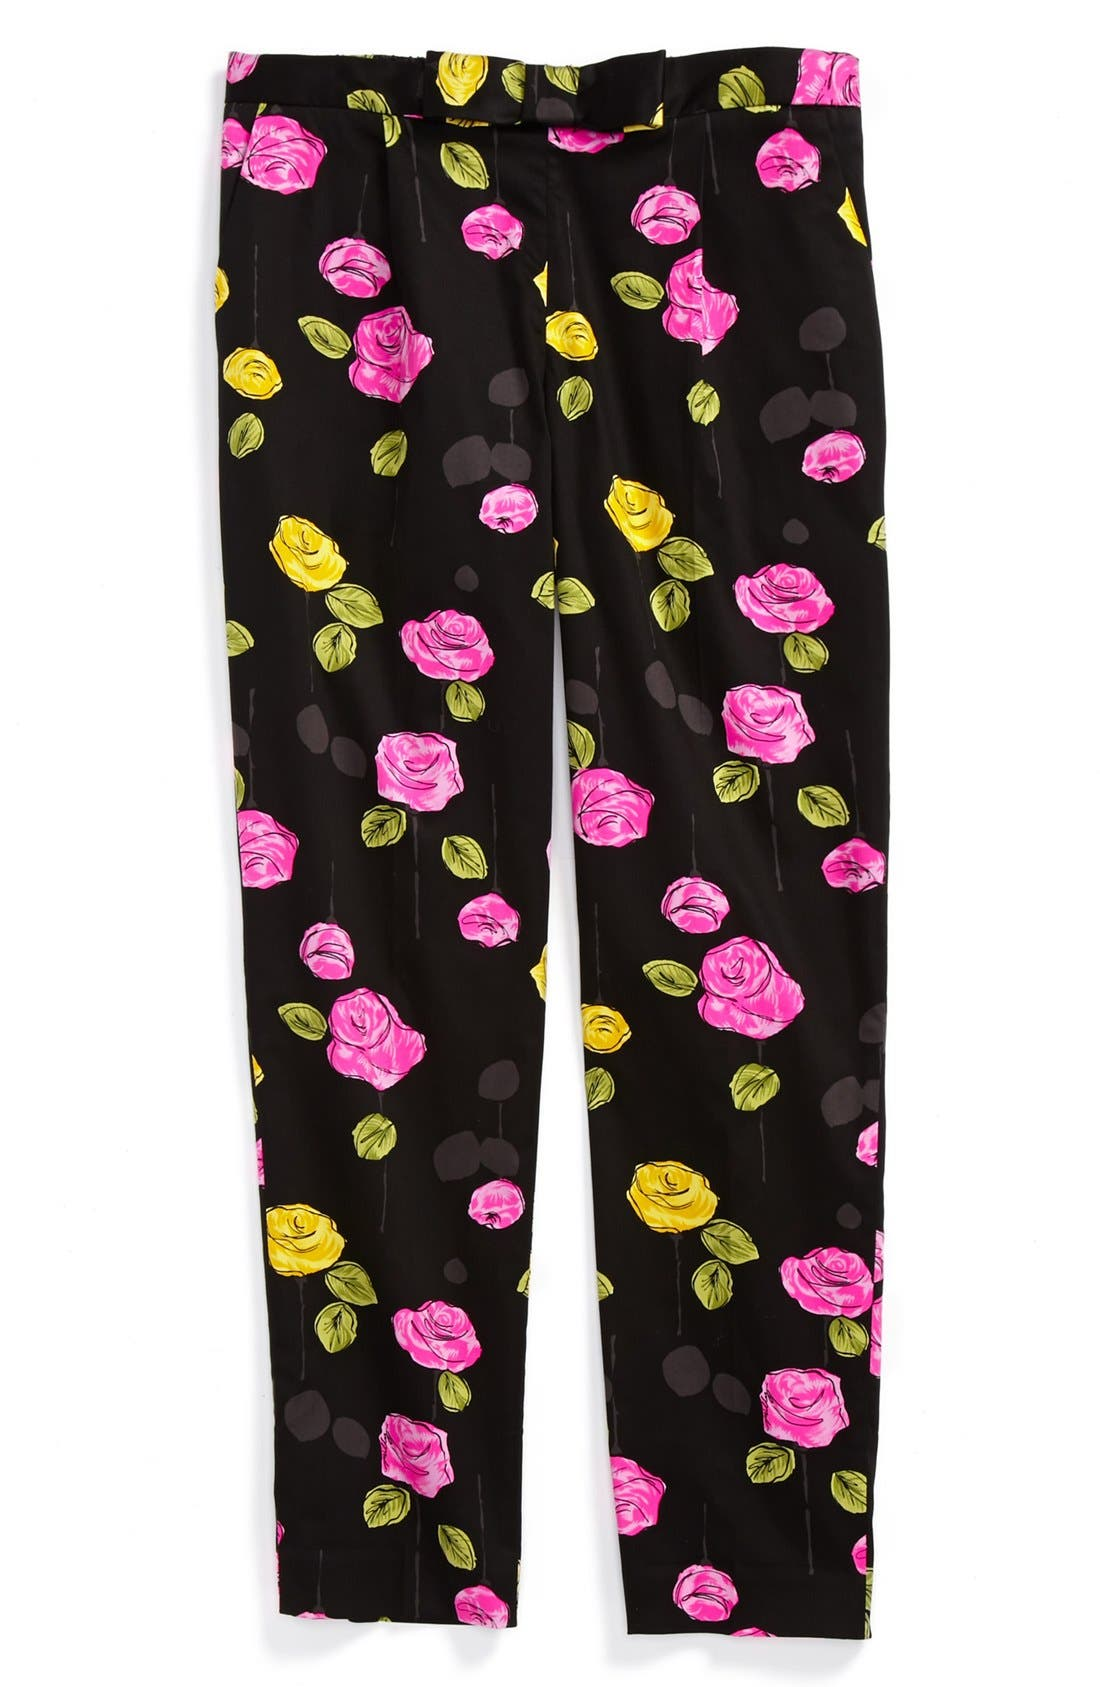 Alternate Image 1 Selected - Milly Minis 'Sally' Floral Print Pants (Toddler Girls, Little Girls & Big Girls)